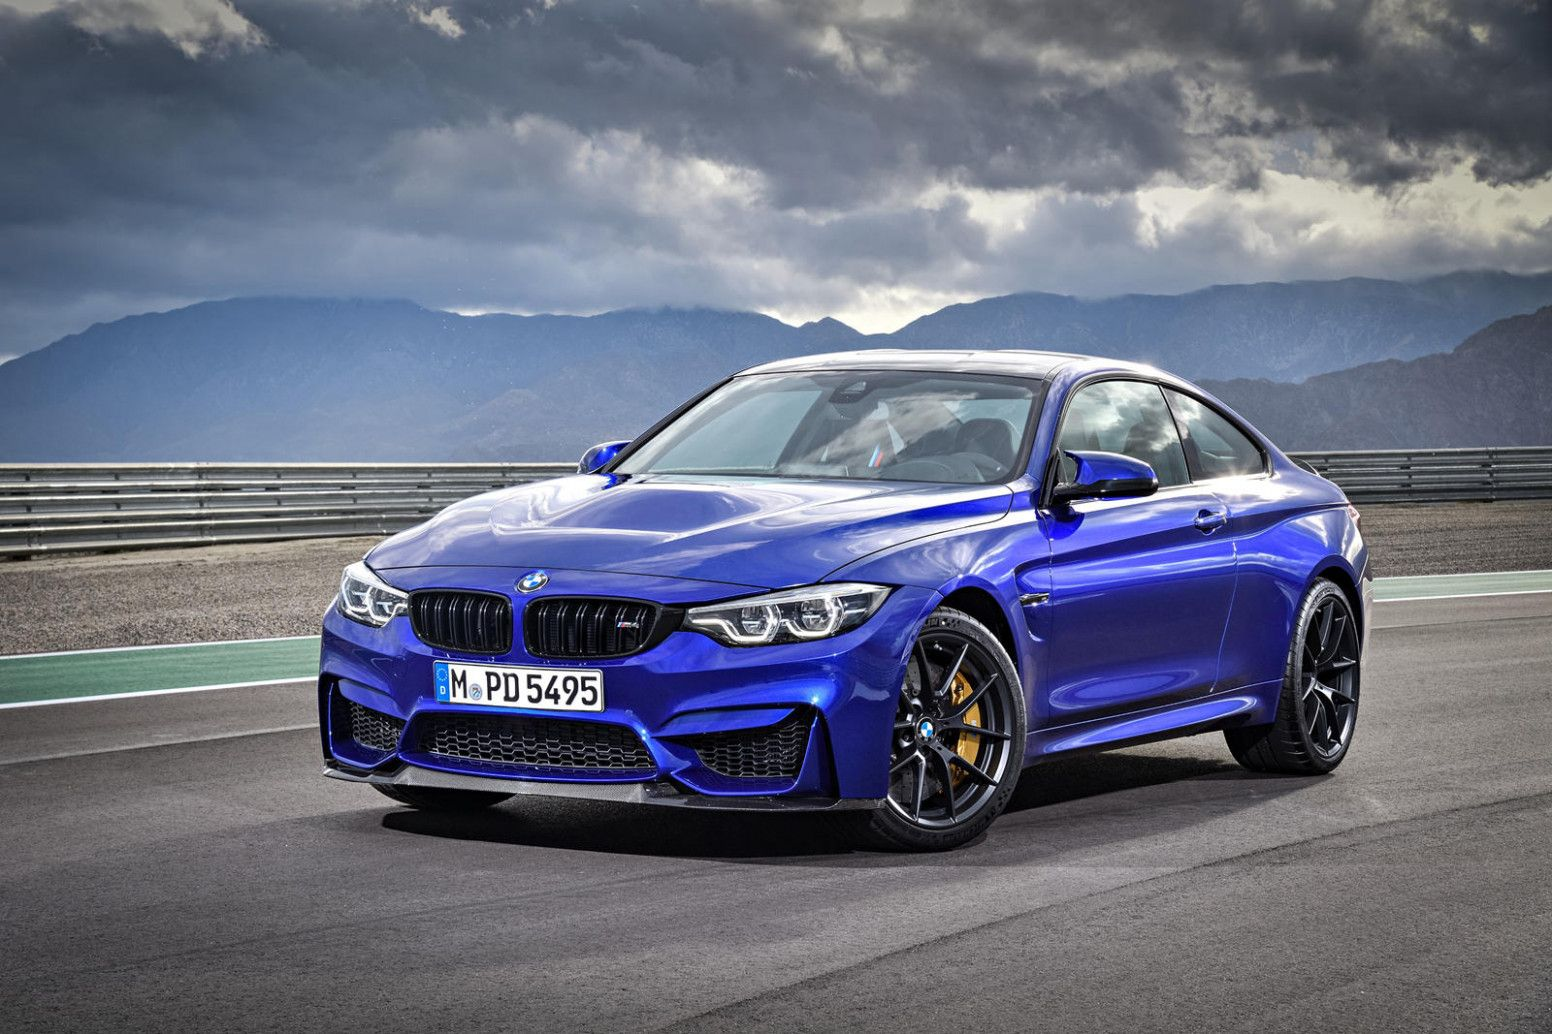 7 Picture 2020 Bmw Blue Colors In 2020 Bmw M4 Bmw Blue Bmw Car Models